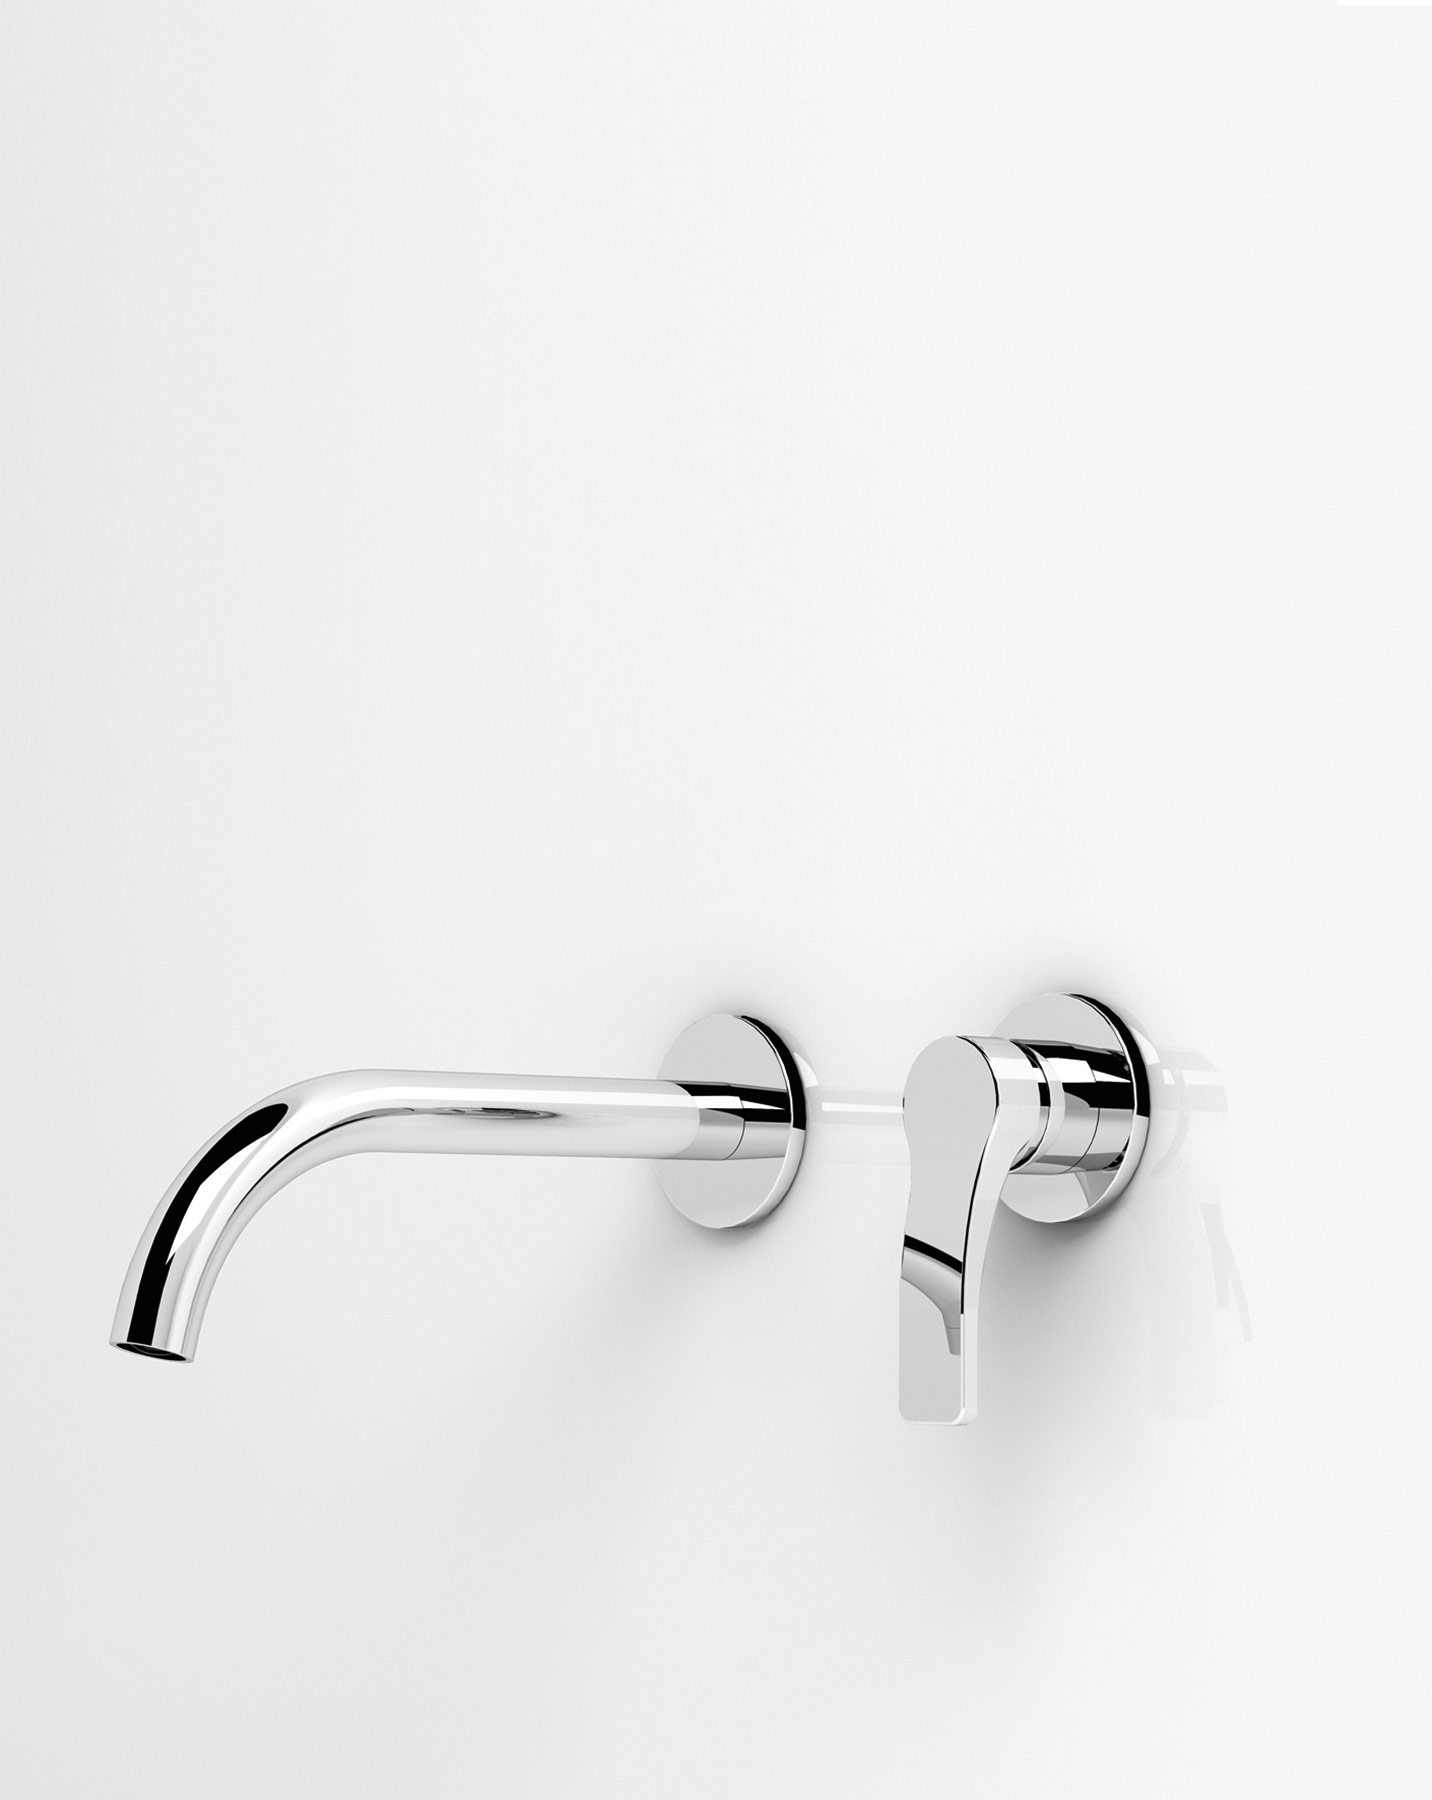 Transitional Lissoni Wall Mount Faucet